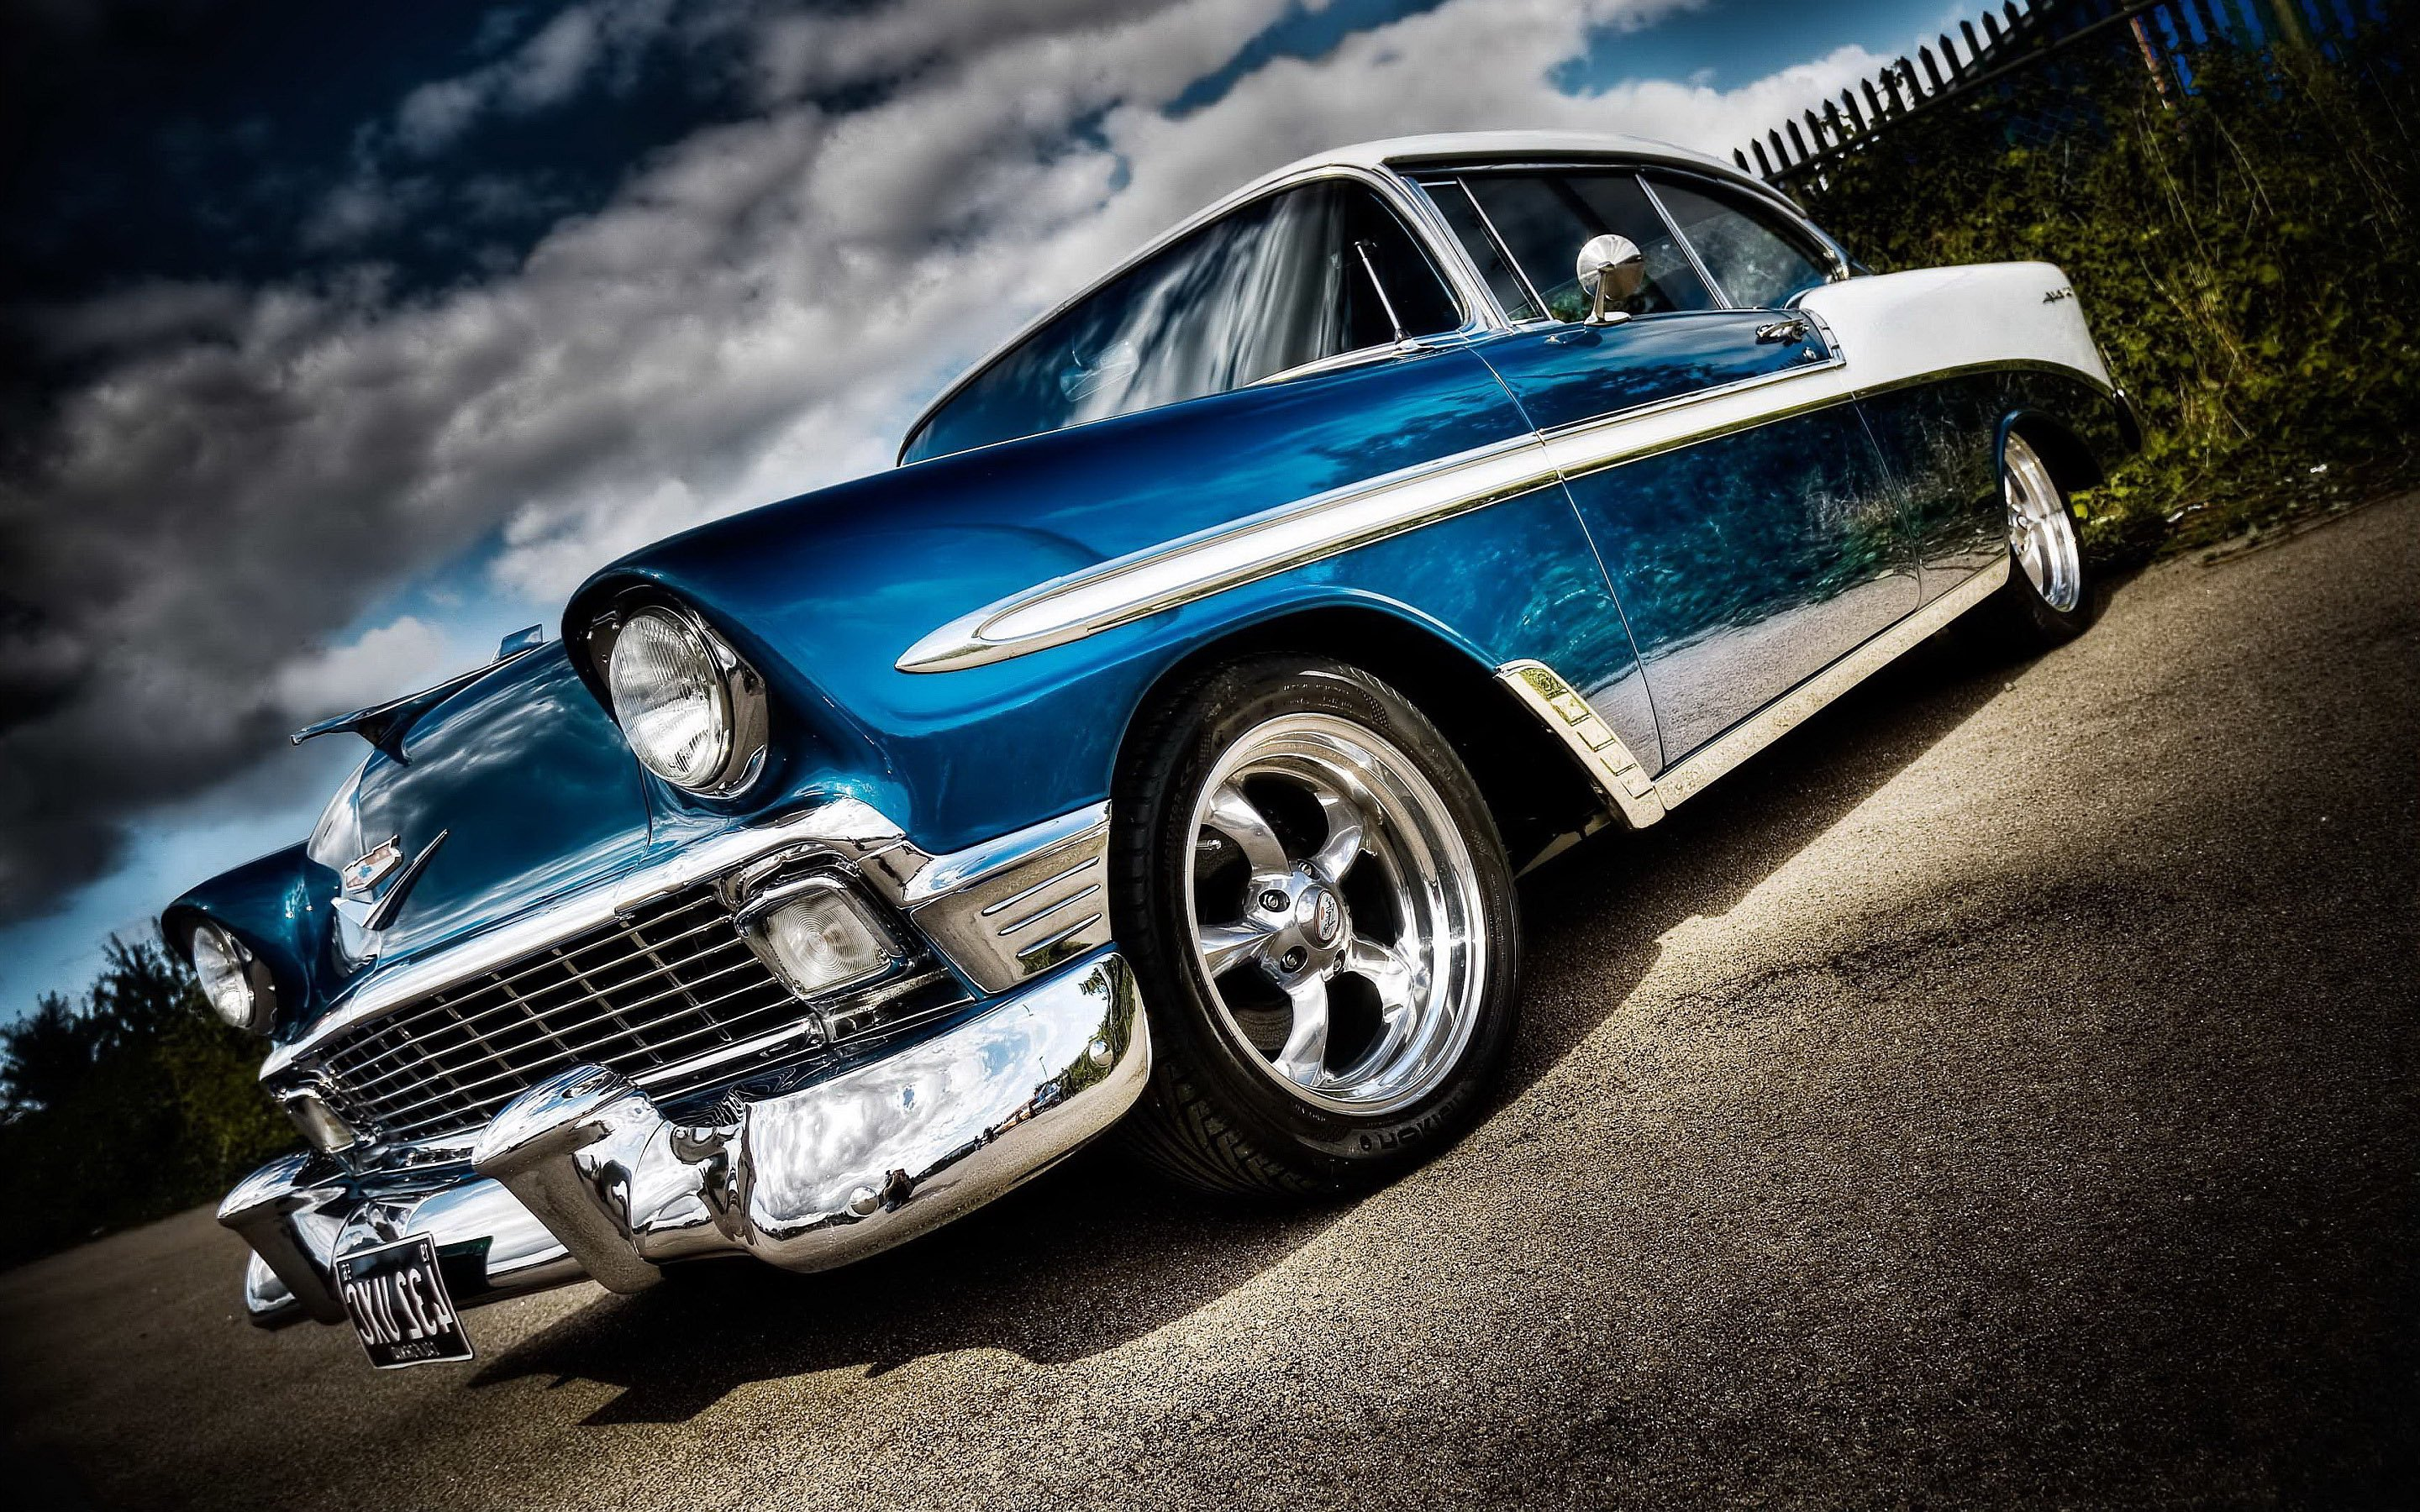 Group Of Vintage Cars Wallpapers 6